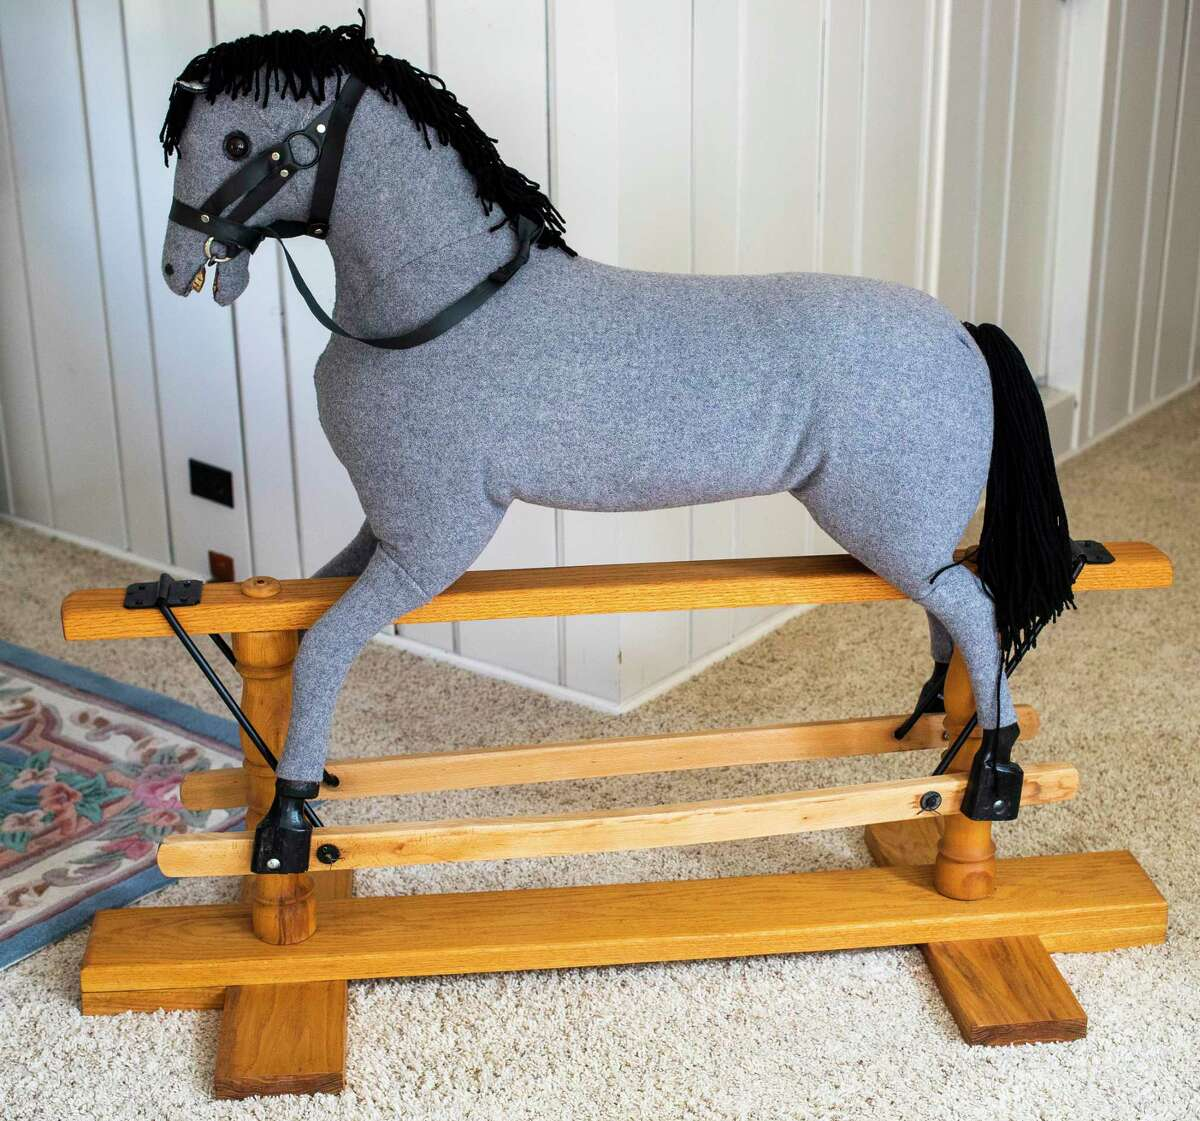 A rocking horse once ridden by the Dow children is now a keepsake of Janet and Irving Snyder, who own the former home of Willard Dow and his family, located at 923 W. Park Drive in Midland. (Katy Kildee/kkildee@mdn.net)